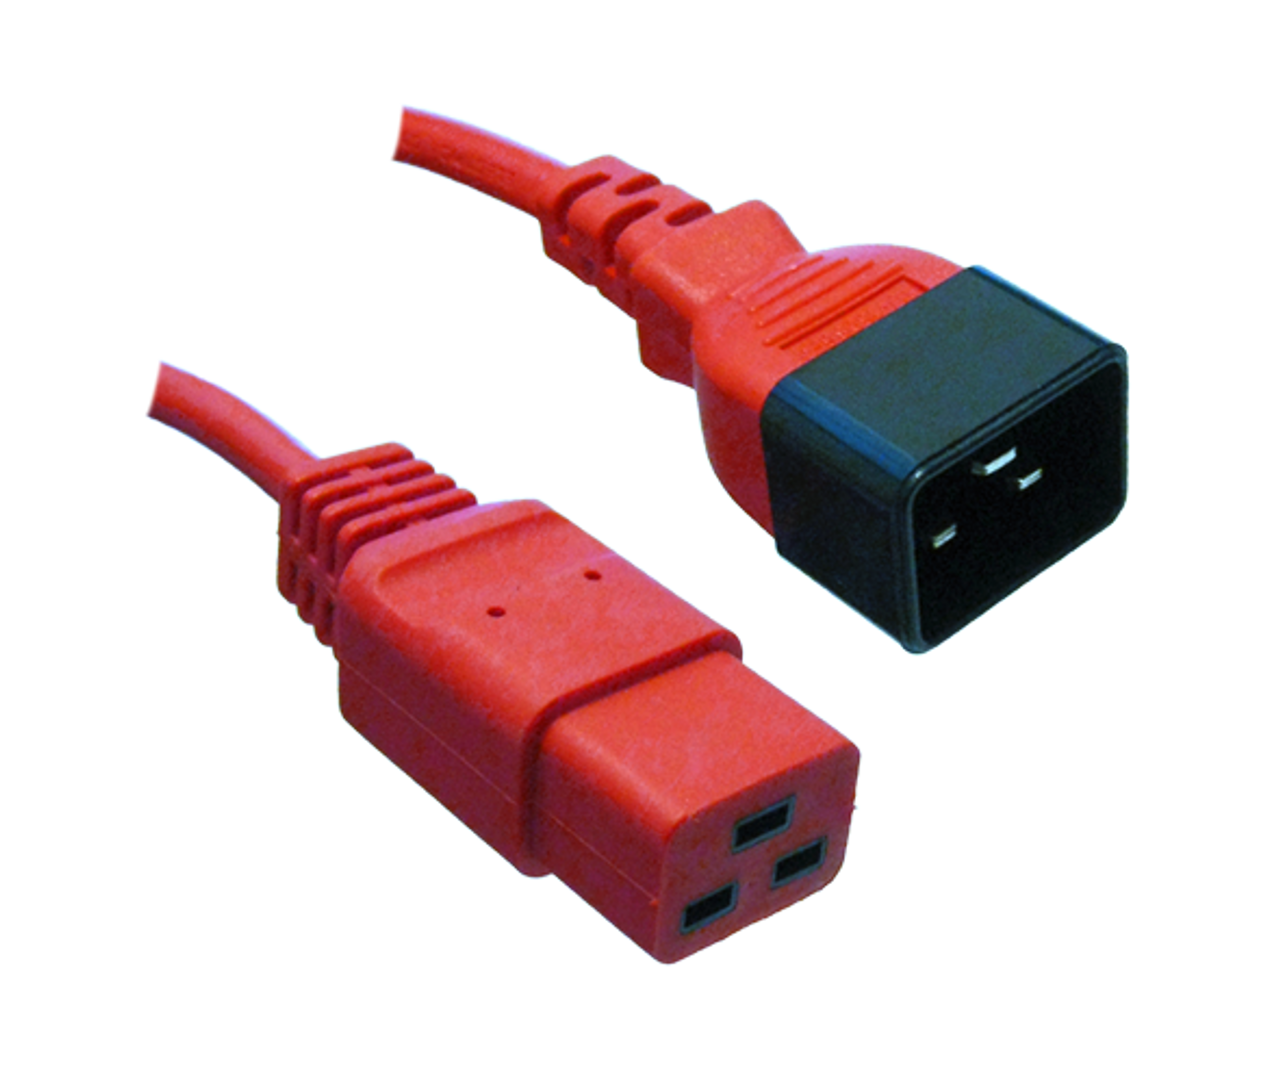 IEC C20 16A plug - IEC C19 16A socket, Red lead